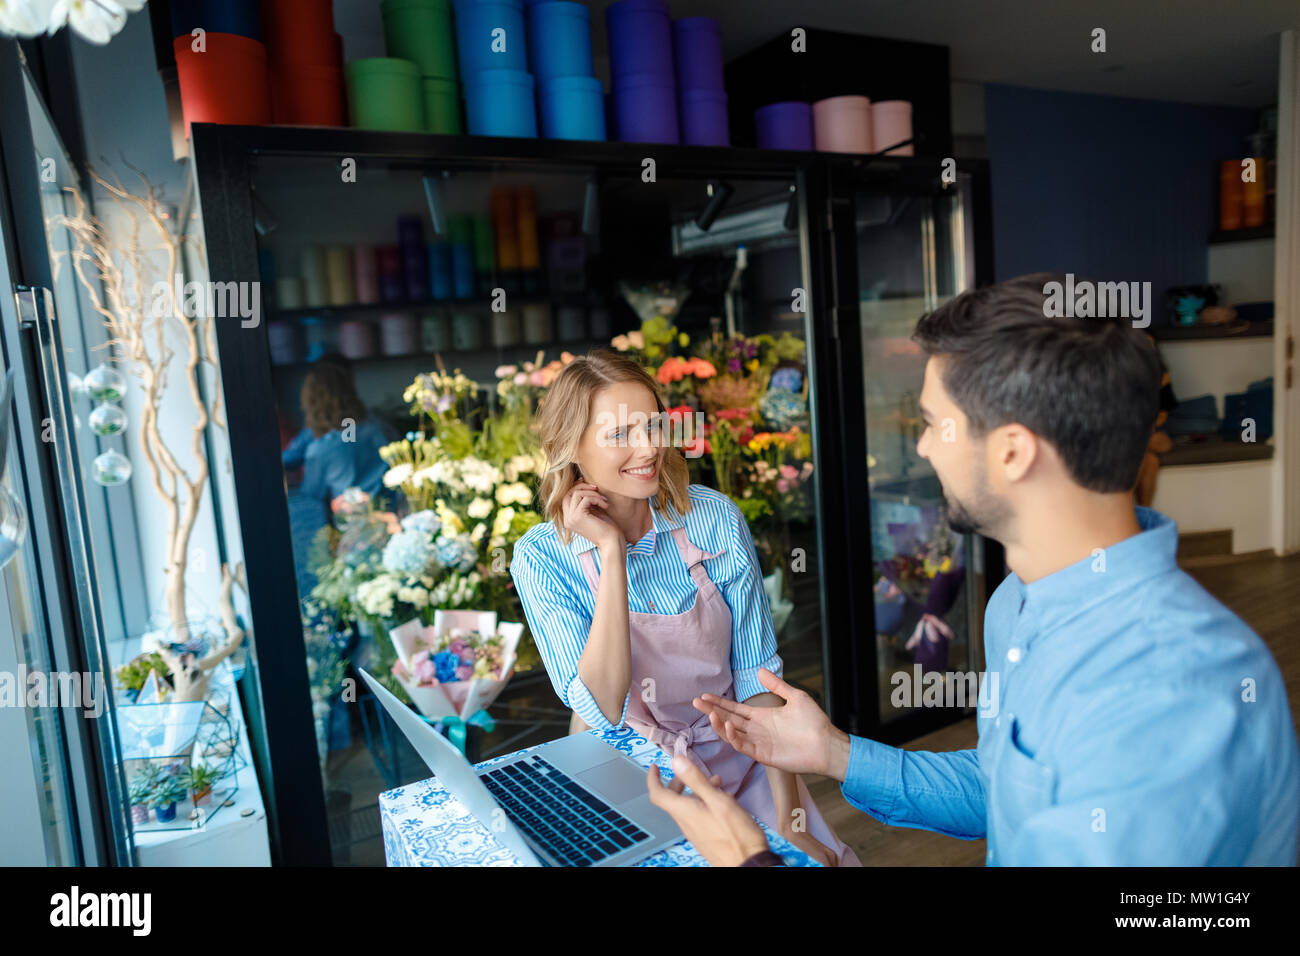 attractive young florist and buyer using laptop and smiling each other in flower shop - Stock Image